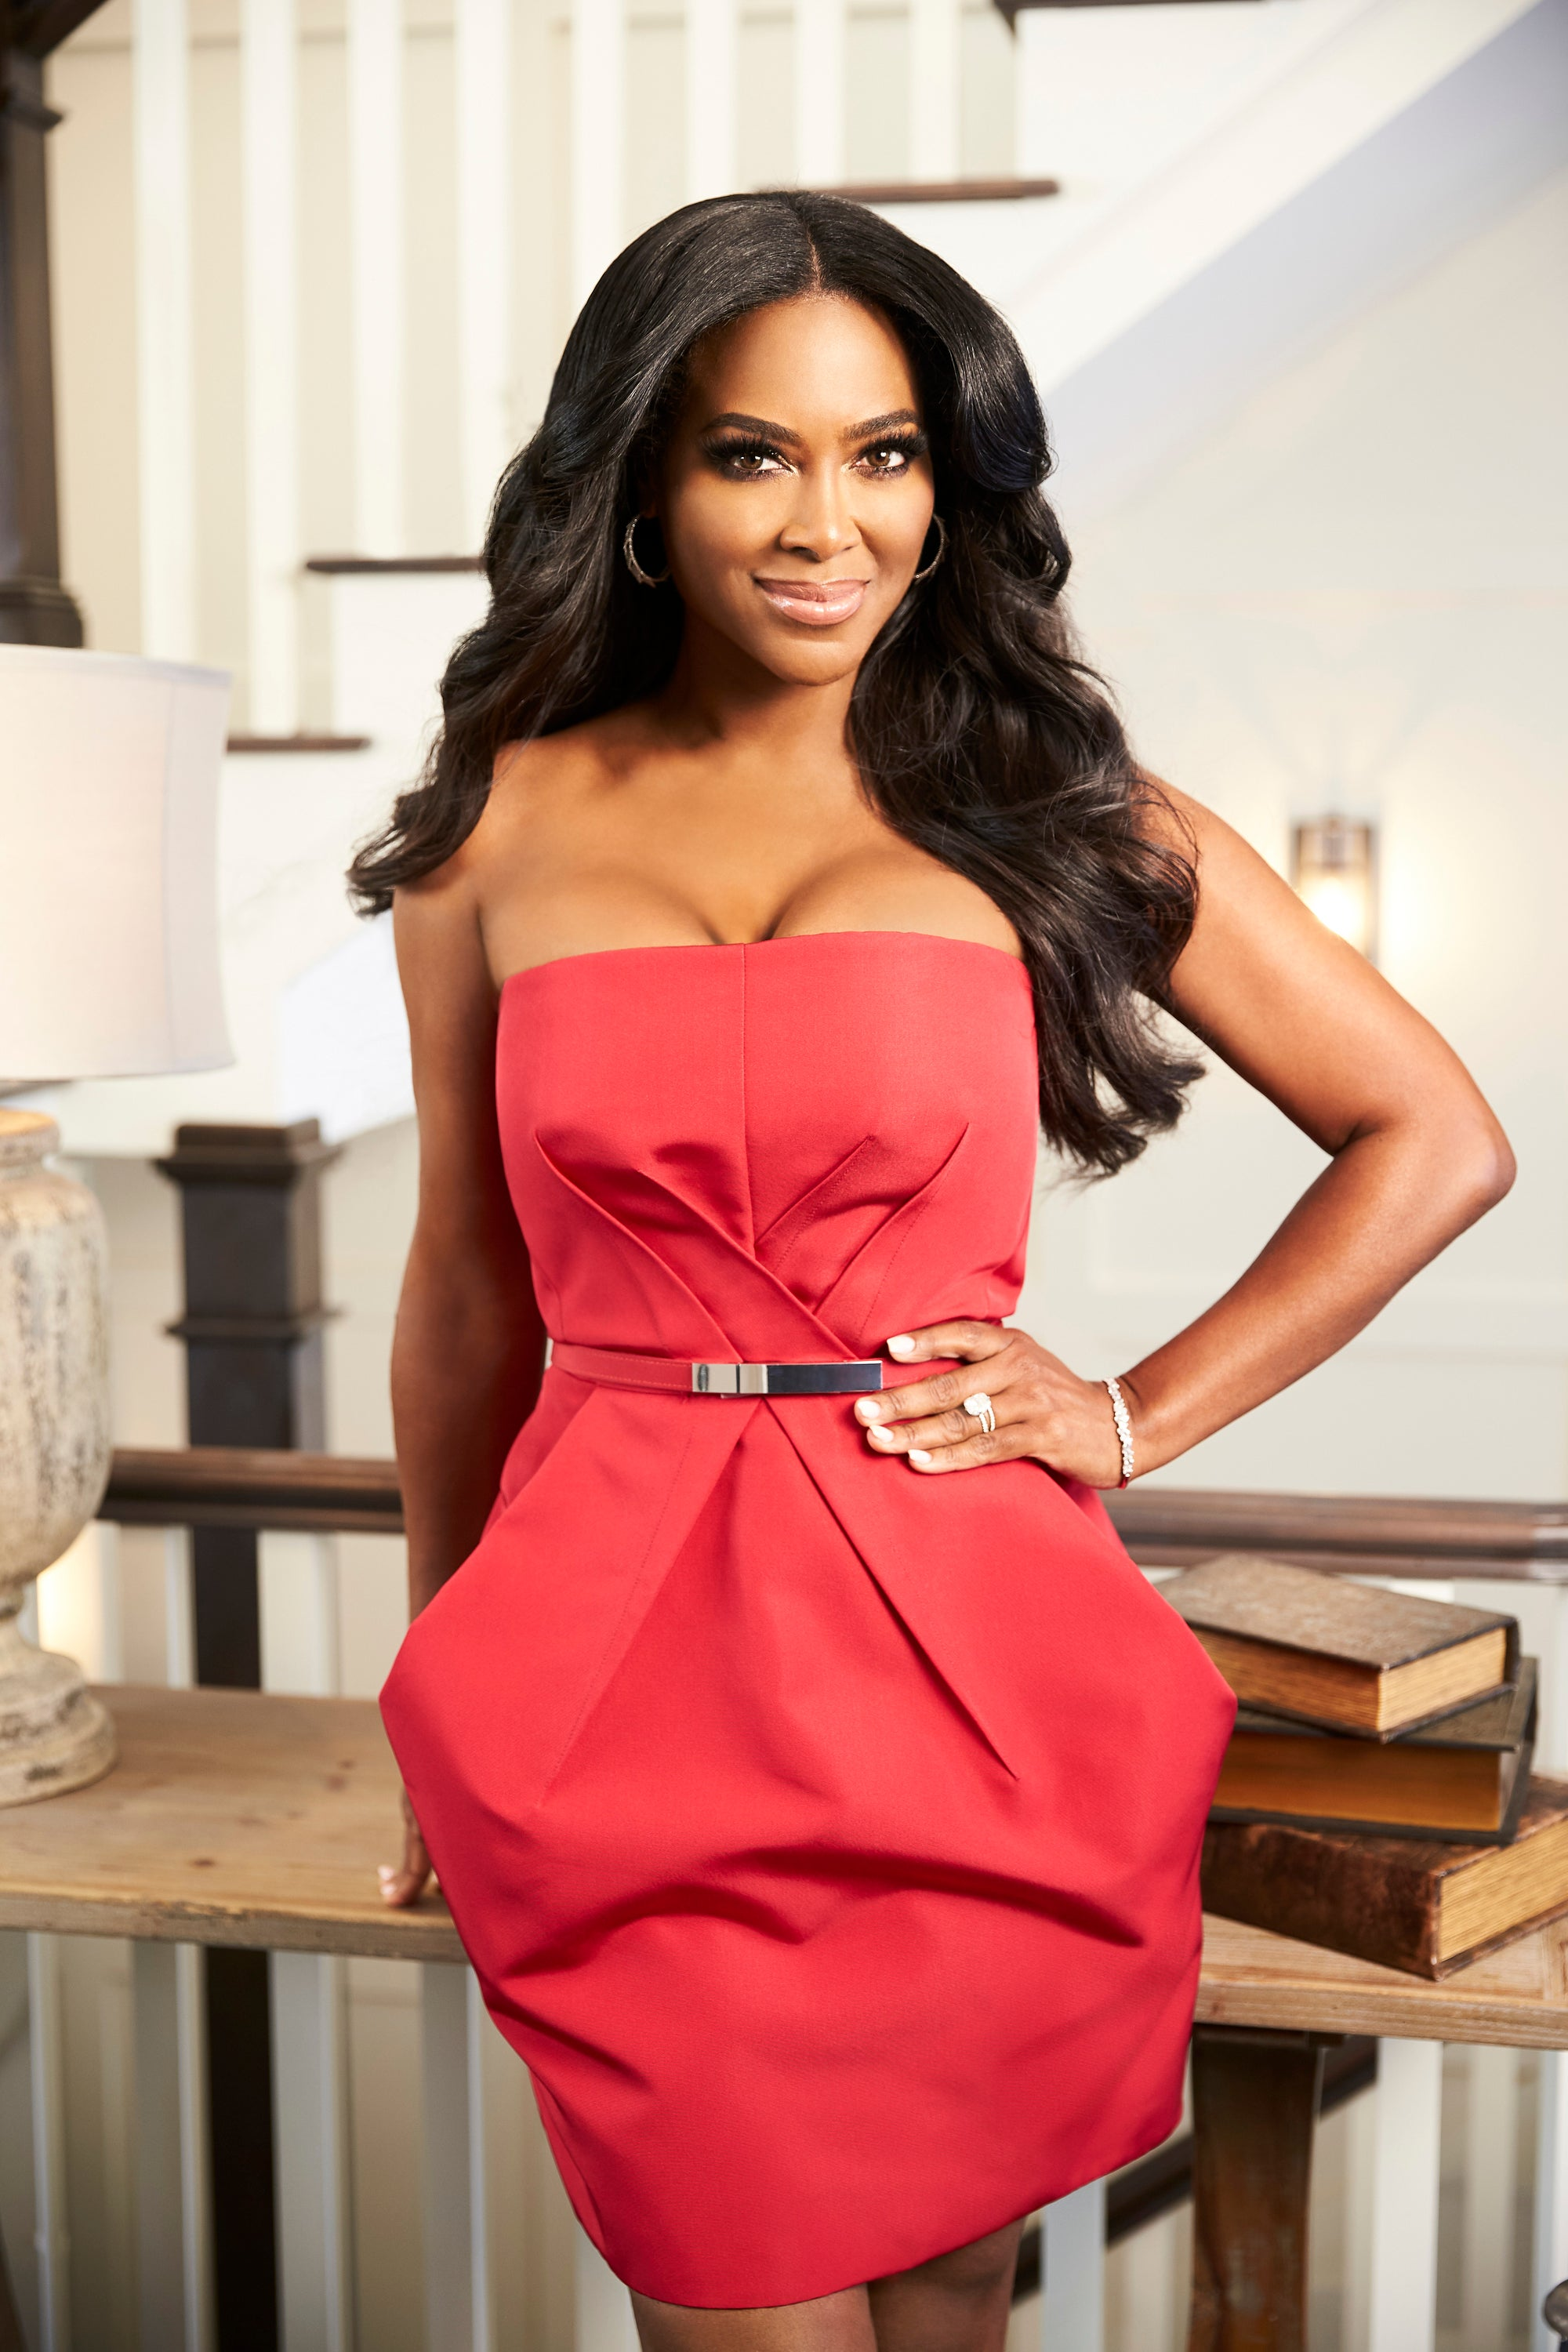 No, Kenya Moore Is Not Using A Surrogate. But She Isn't Opposed To It